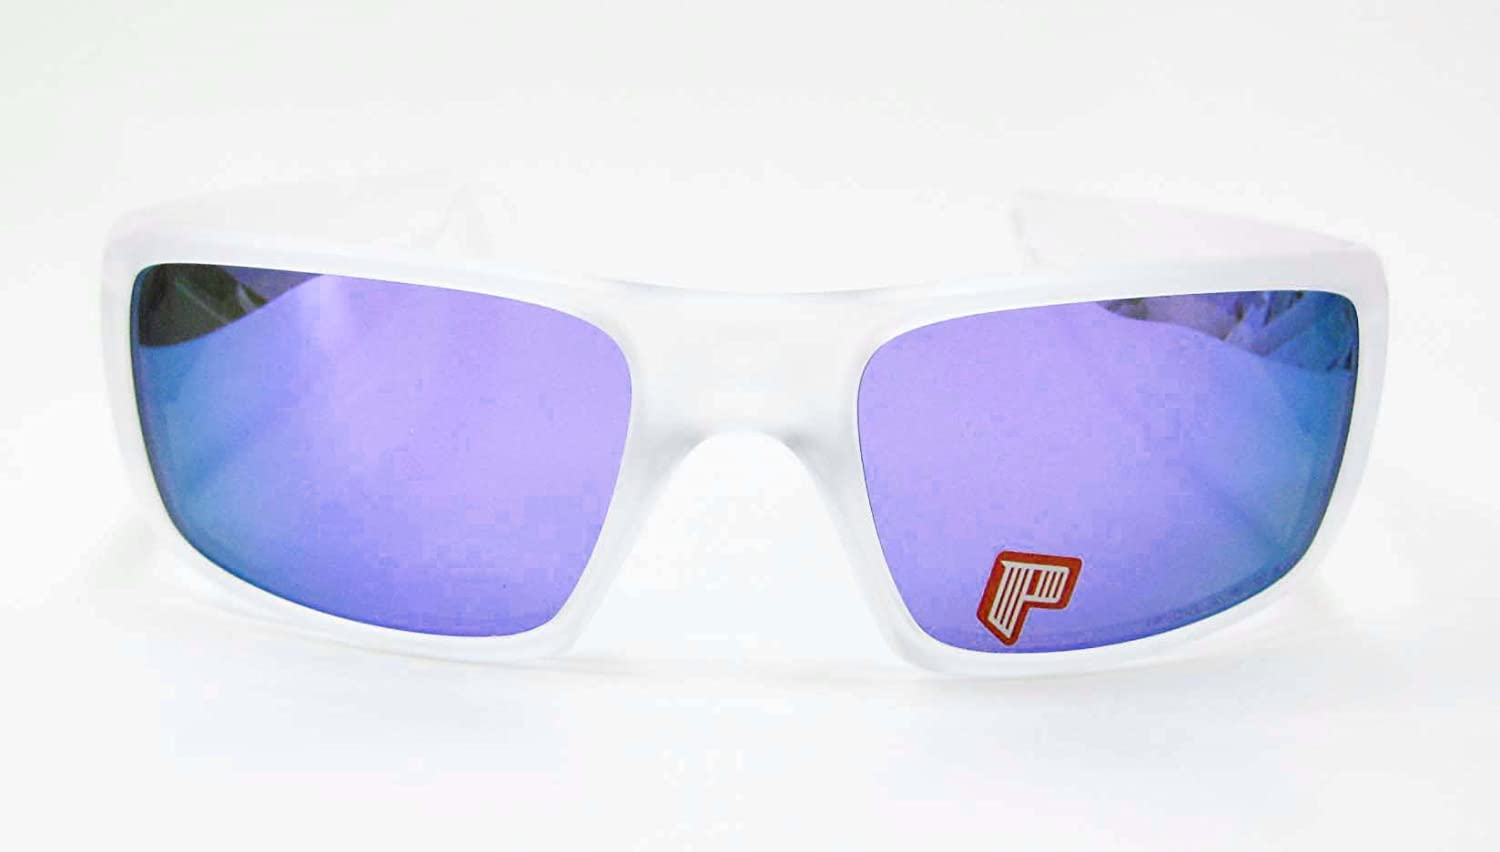 843b68784e Amazon.com  Oakley Crankshaft Sunglasses Violet Iridium Polarized Matte  Clear  Everything Else